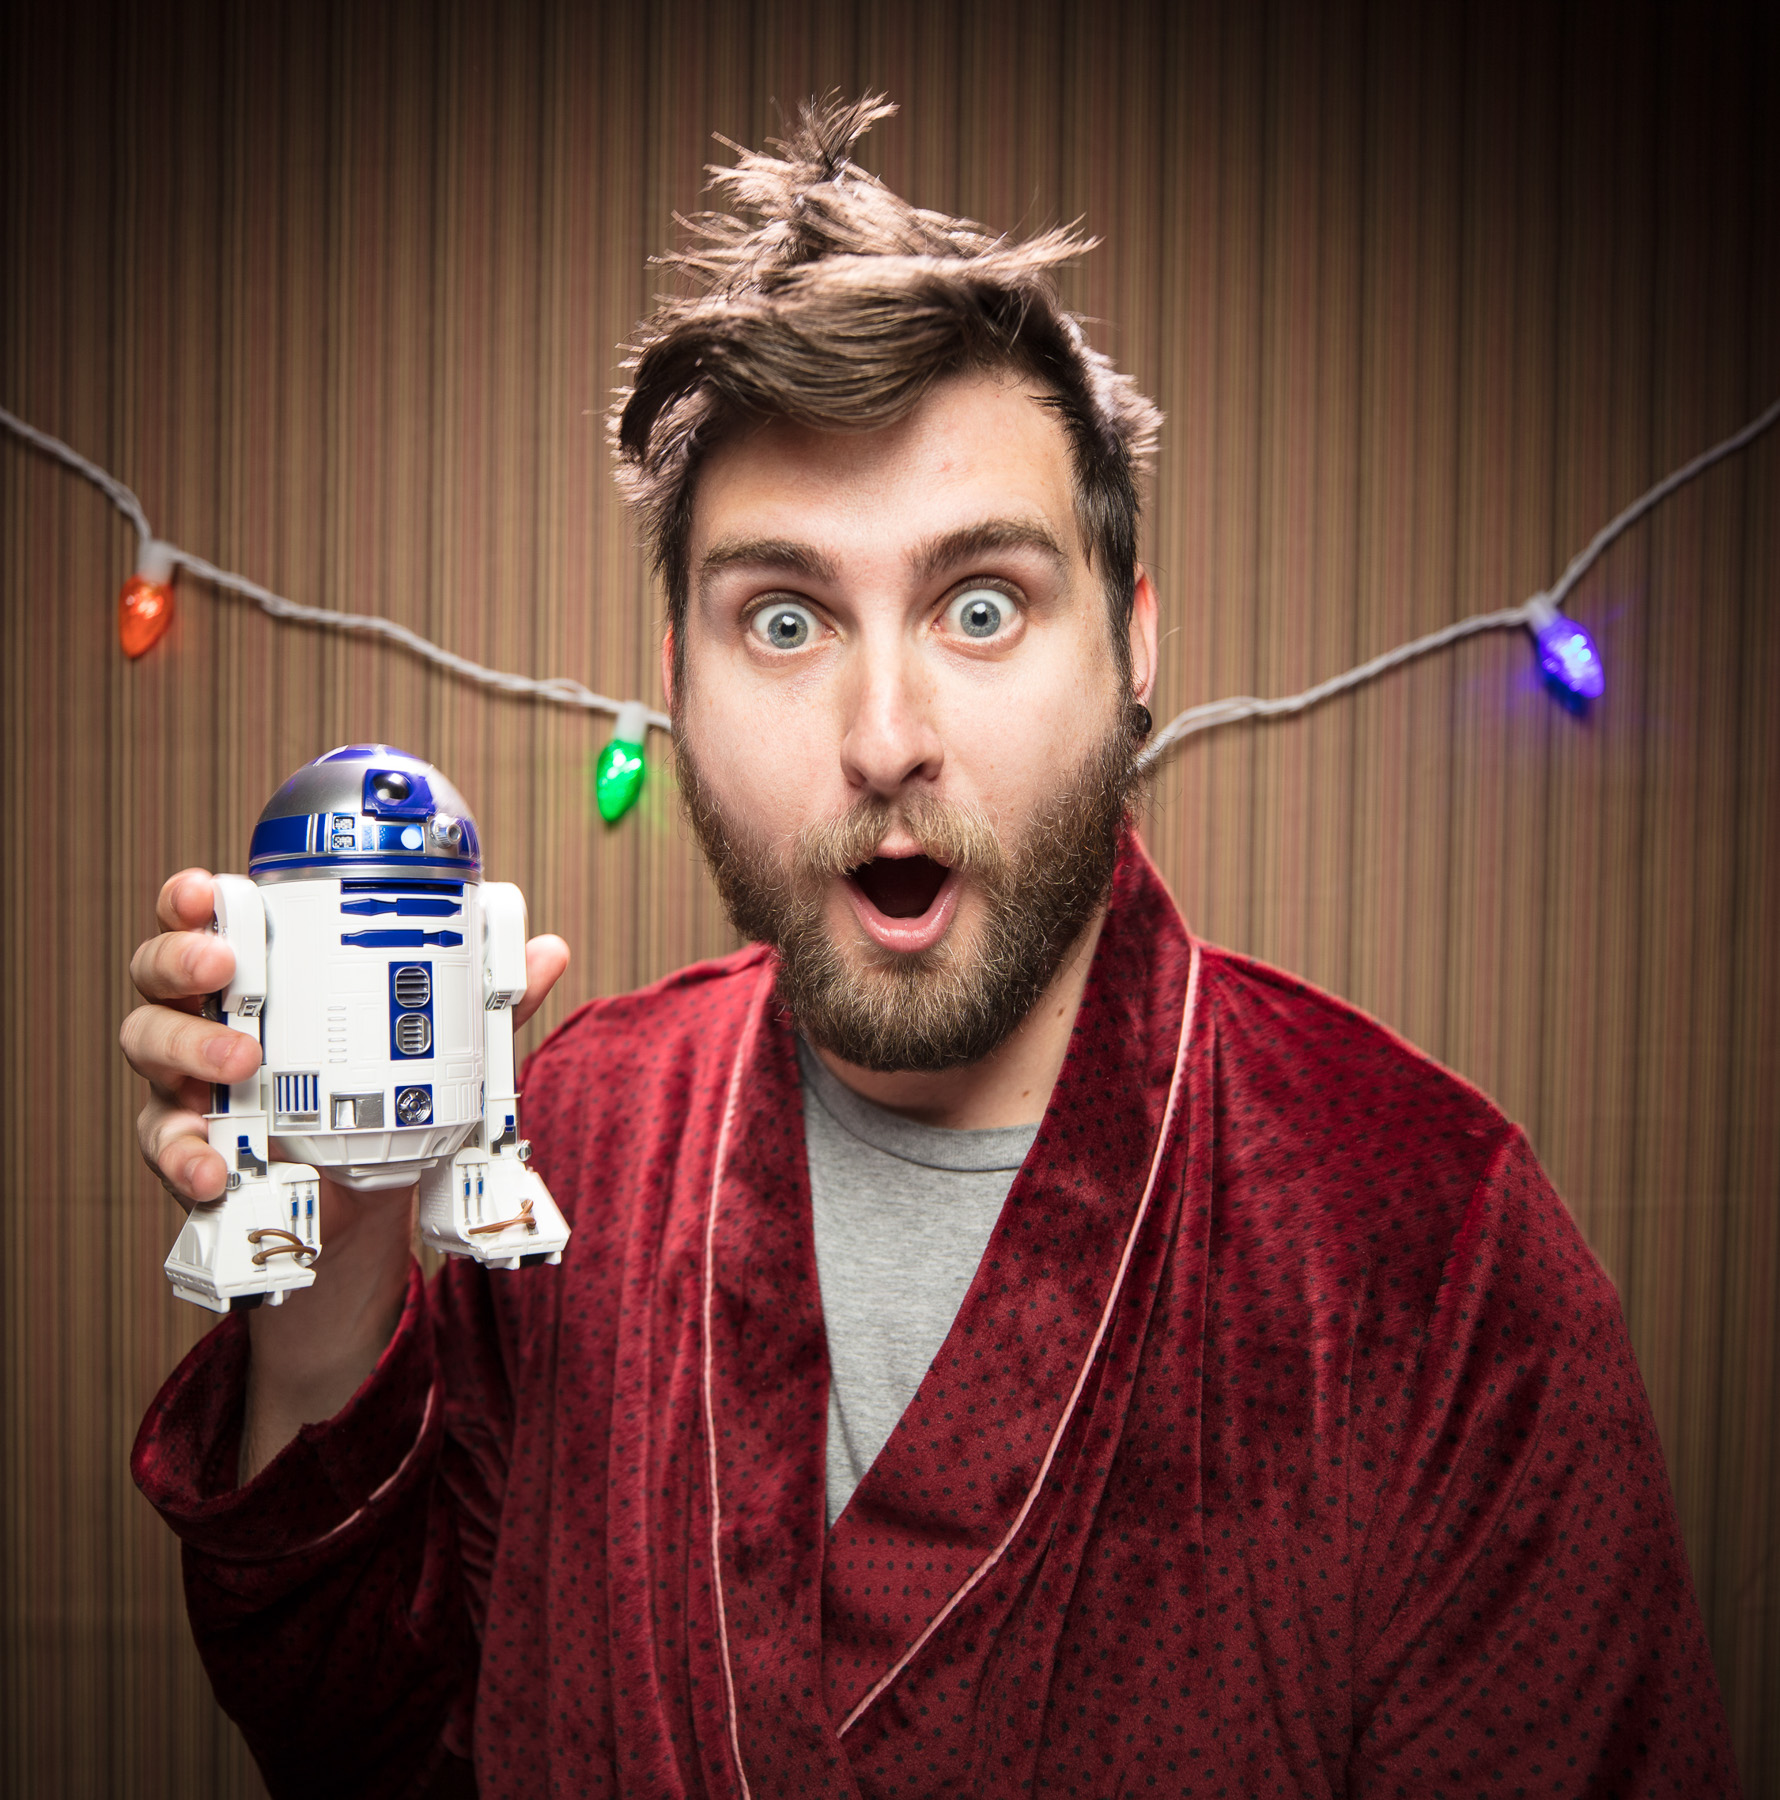 Portrait of bearded man holding Sphero R2-D2 in robe in Boulder, Colorado.